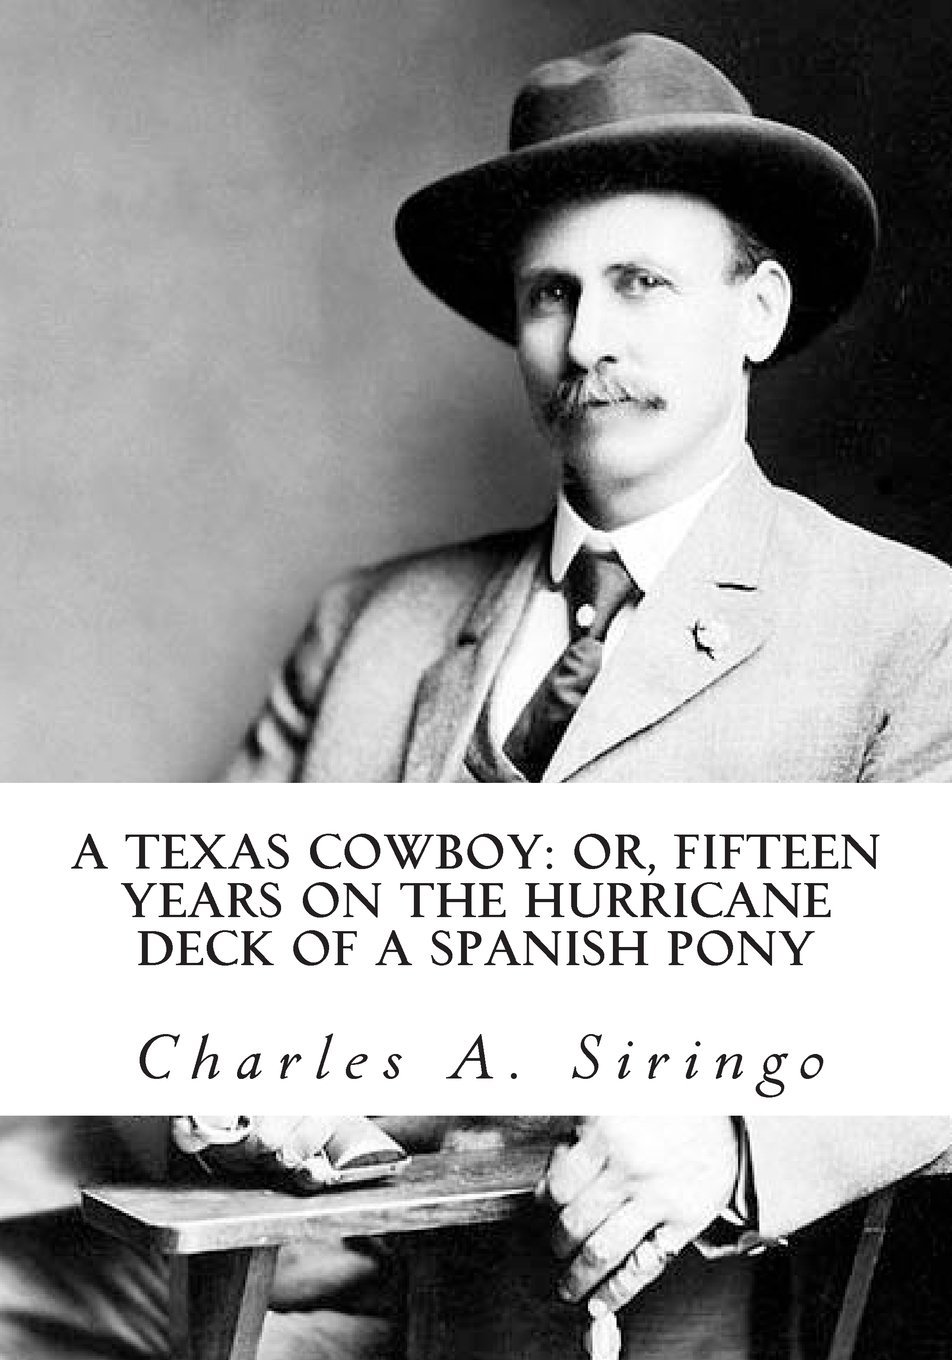 A Texas Cowboy: or, Fifteen Years on the Hurricane Deck of a Spanish Pony PDF